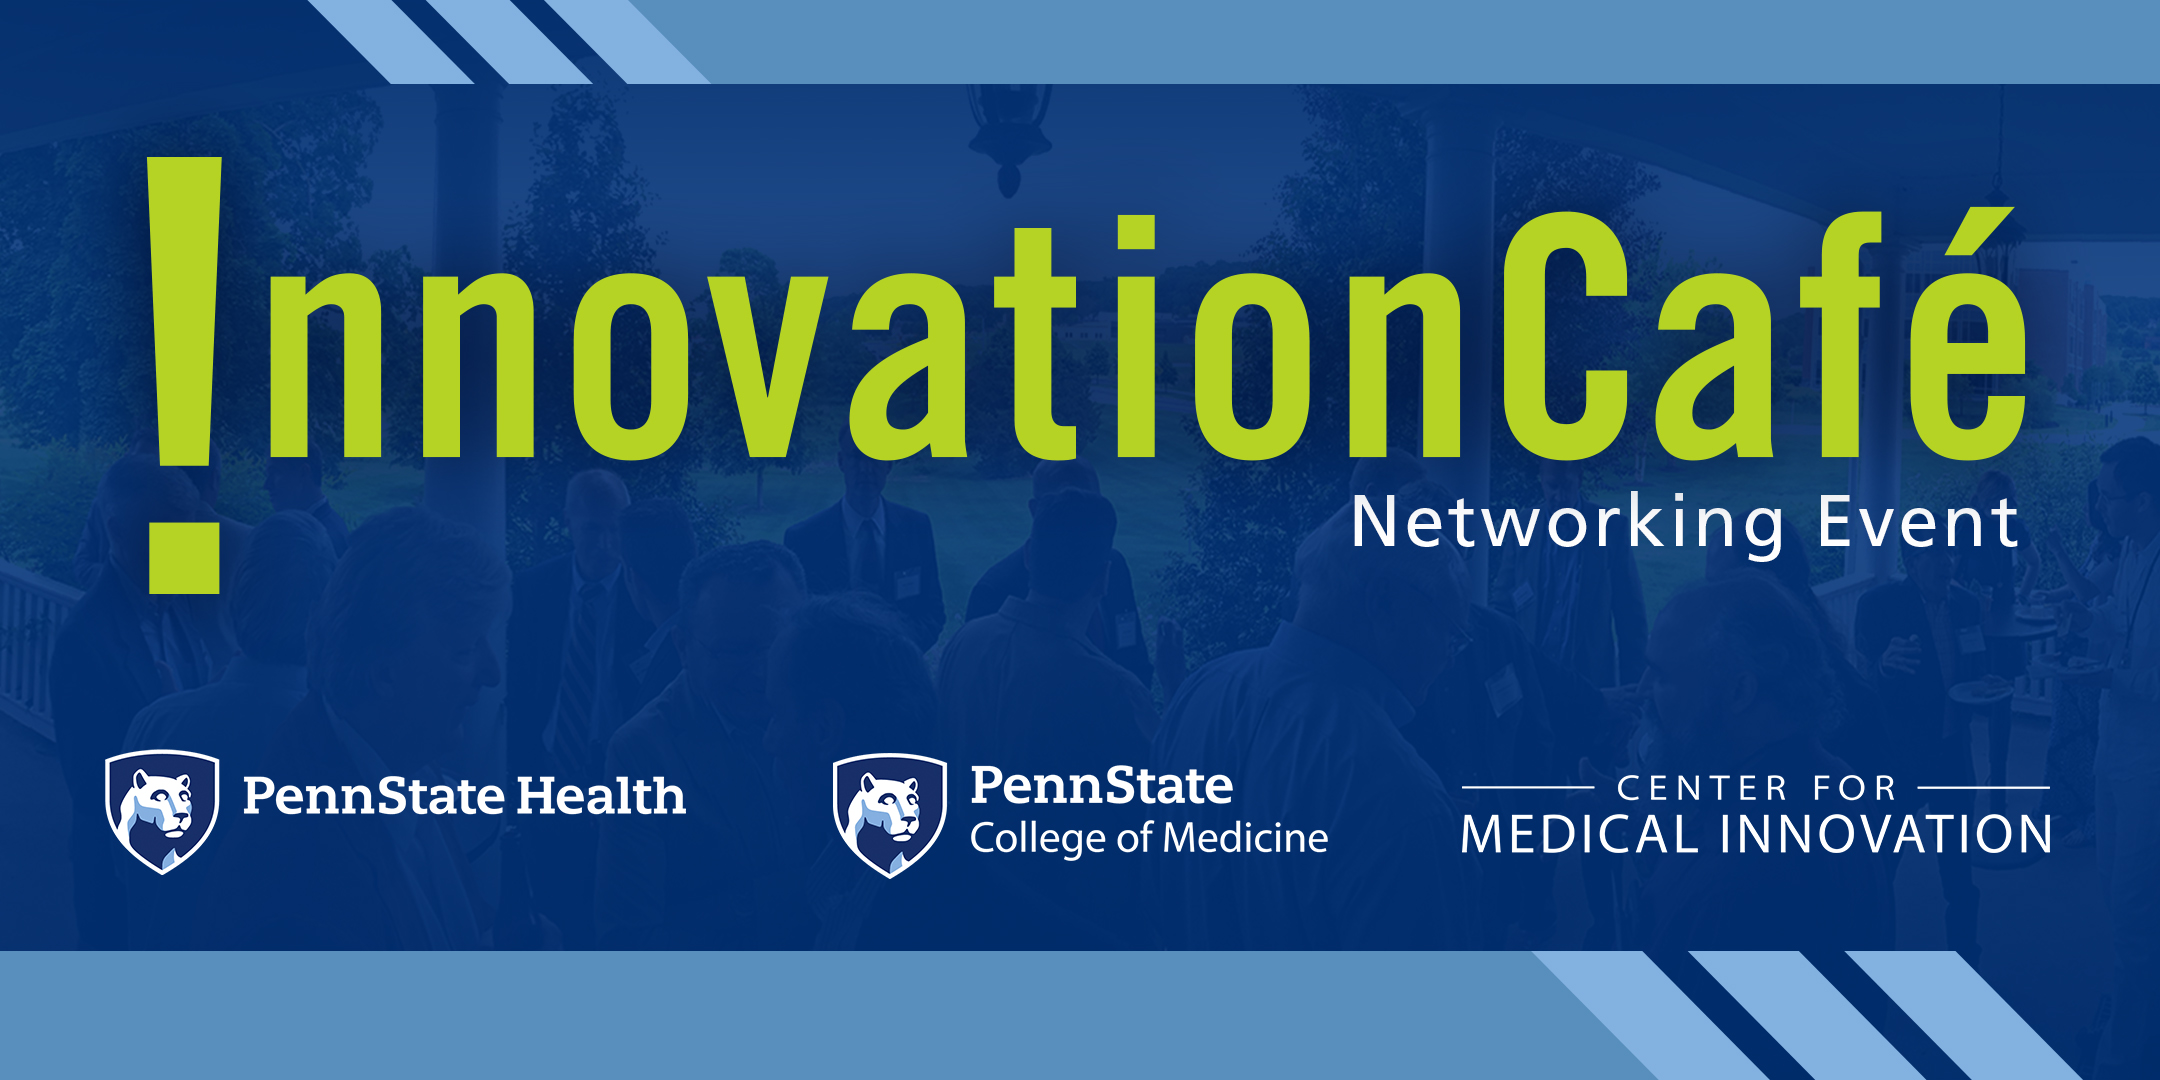 The header for Penn State Center for Medical Innovation's Innovation Cafe is seen. The graphic shows two people shaking hands, overlaid with a dark blue gradient with lighter blue diagonal stripes behind it, and the words Innovation Cafe in green overlaid on top of it in large type. The logos for Penn State Health, Penn State College of Medicine and Penn State Center for Medical Innovation appear across the bottom.